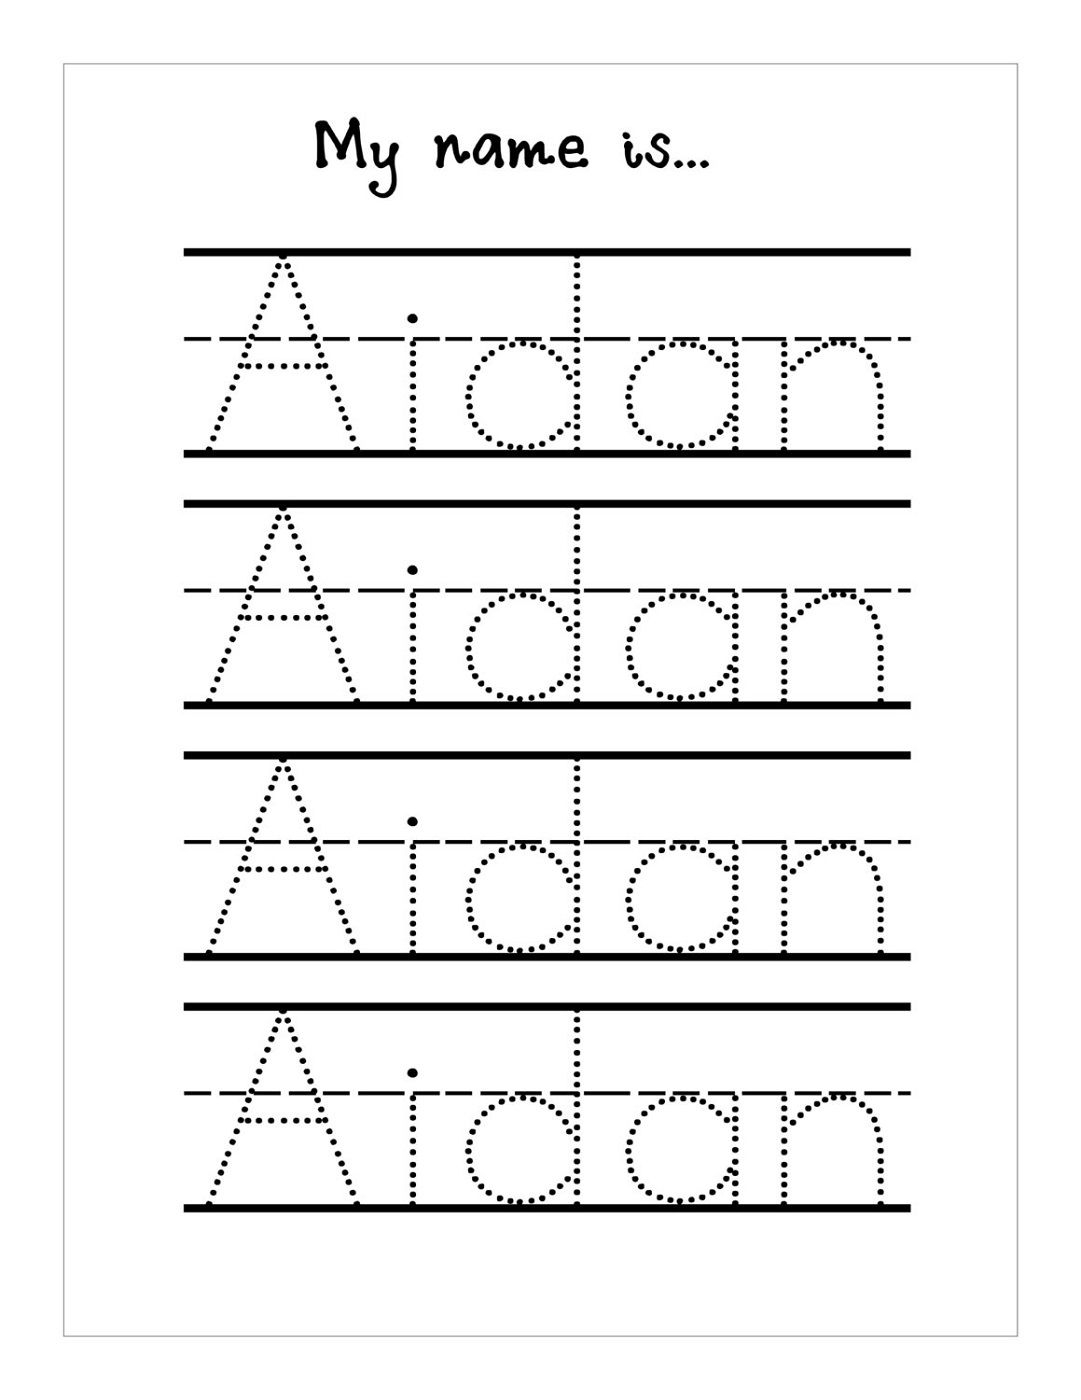 Traceable Name Worksheets | Name Tracing Worksheets, Tracing